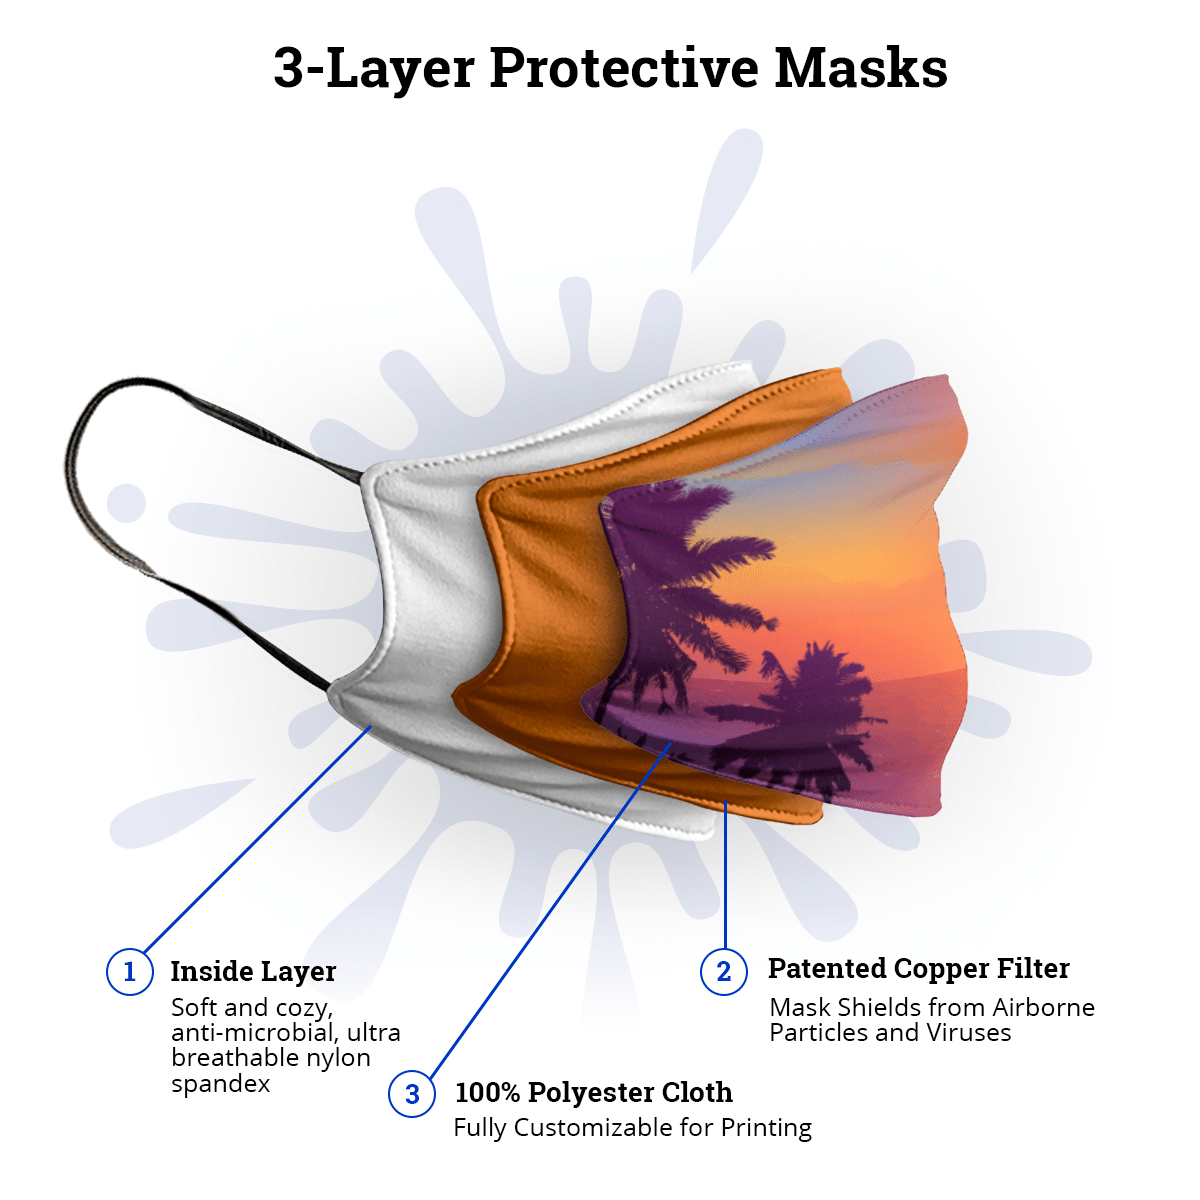 3-Layer Protective Mask